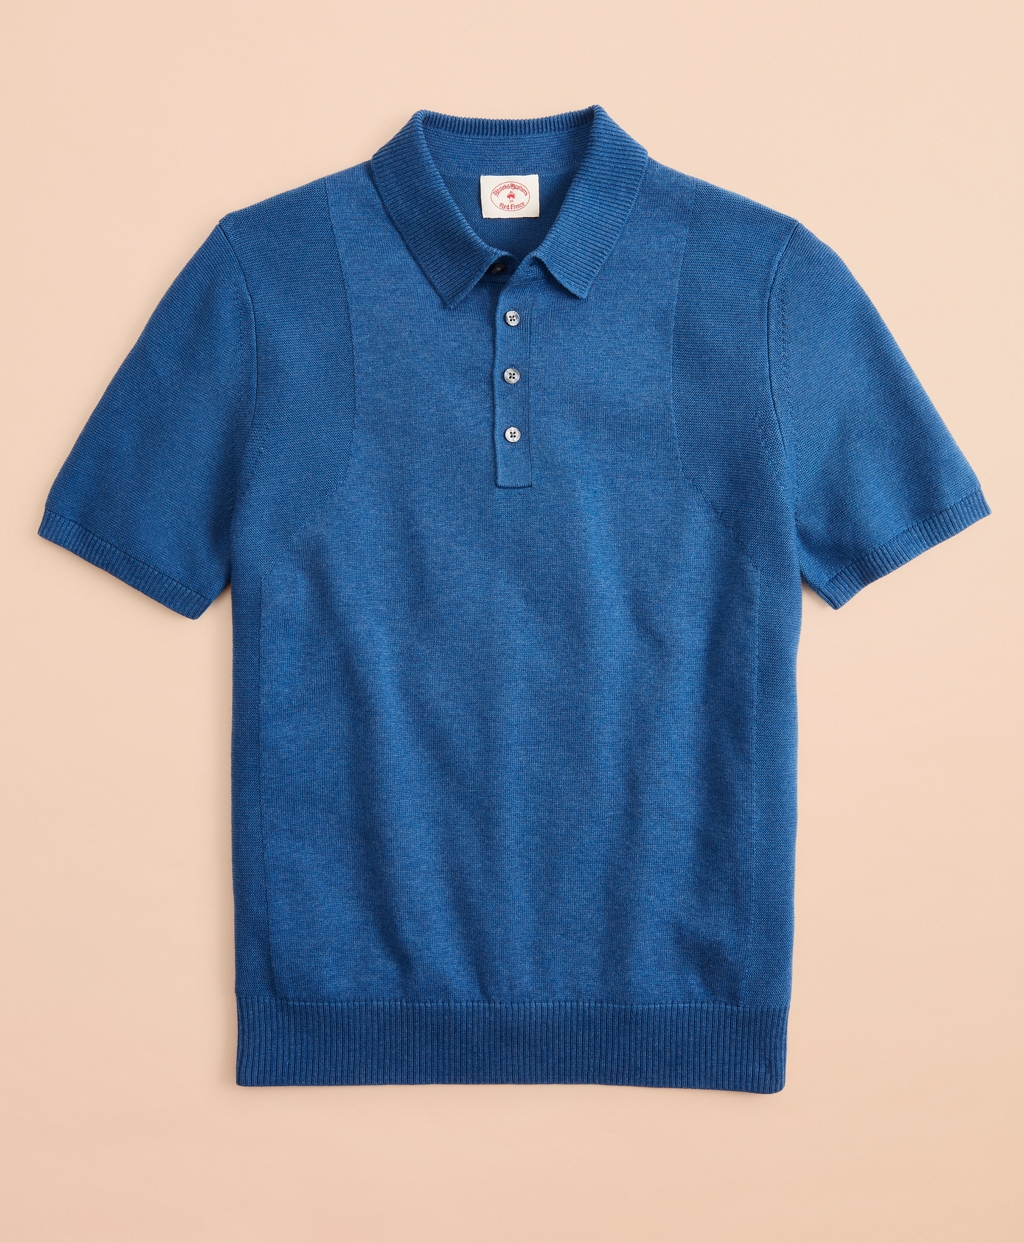 Mens Vintage Shirts – Casual, Dress, T-shirts, Polos Brooks Brothers Mens COOLMAX Polo Sweater $44.62 AT vintagedancer.com